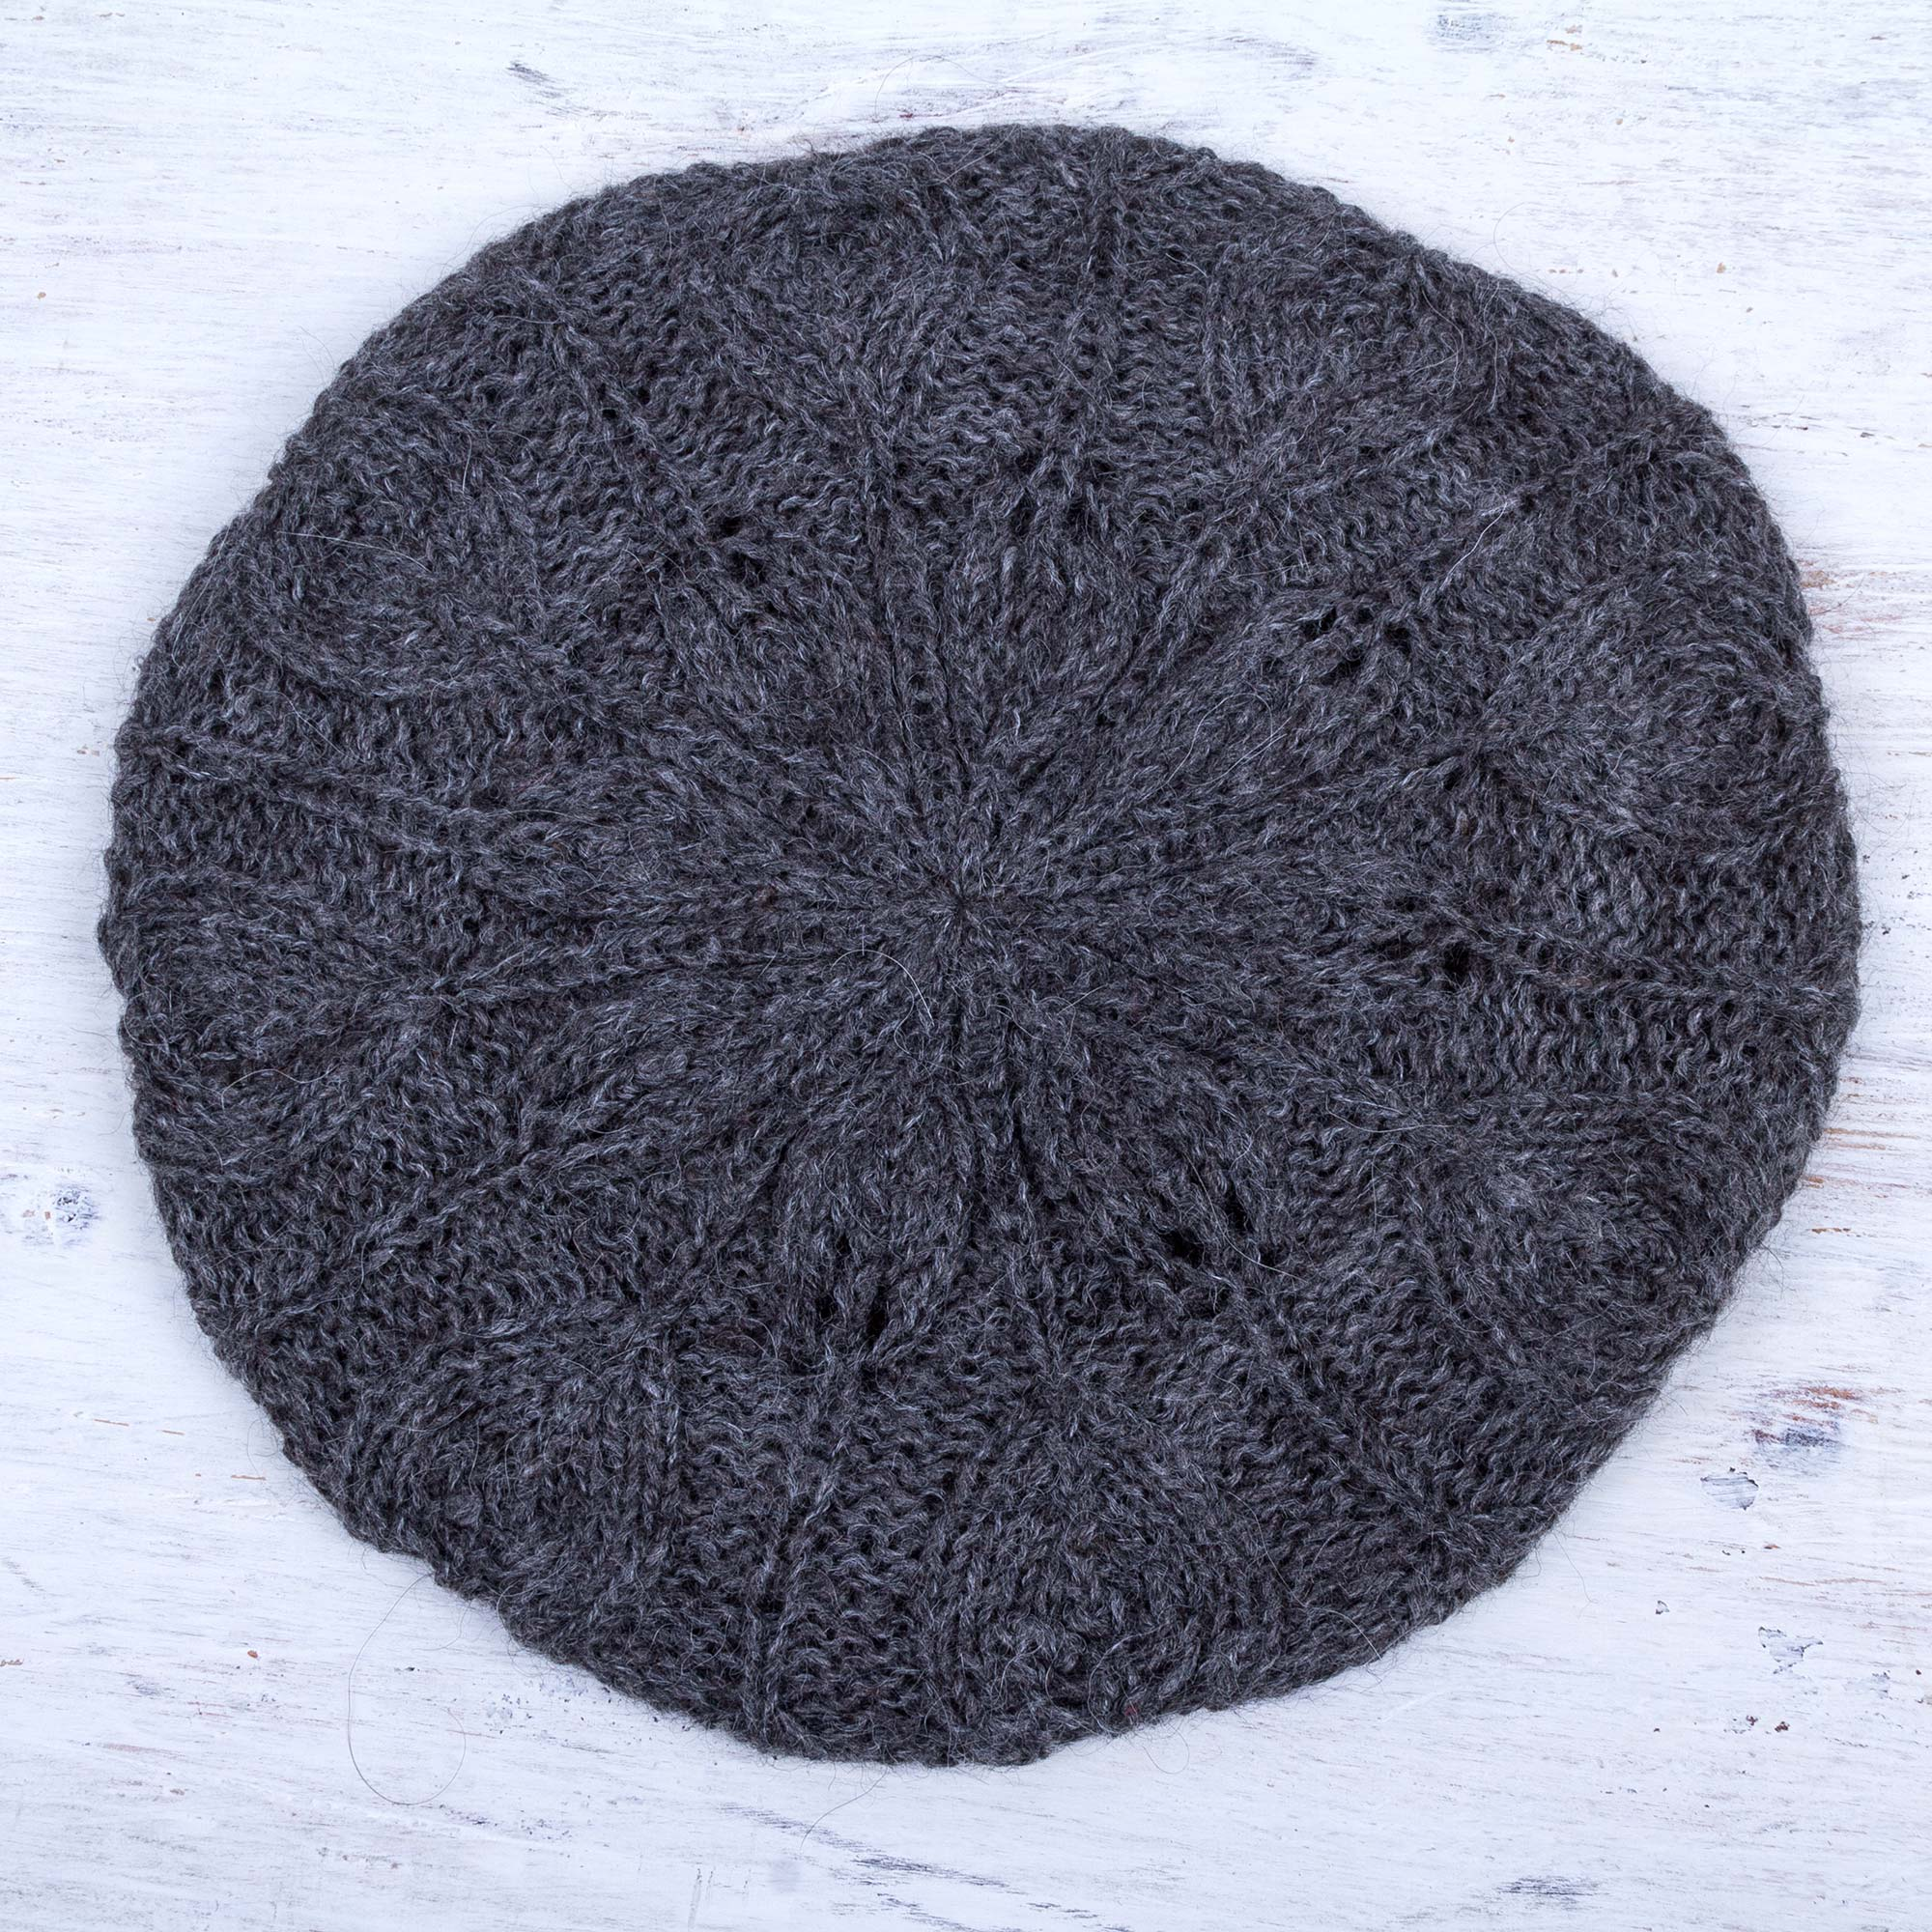 58c62225 Andean Alpaca Wool Hand Knitted Beret in Charcoal Grey,